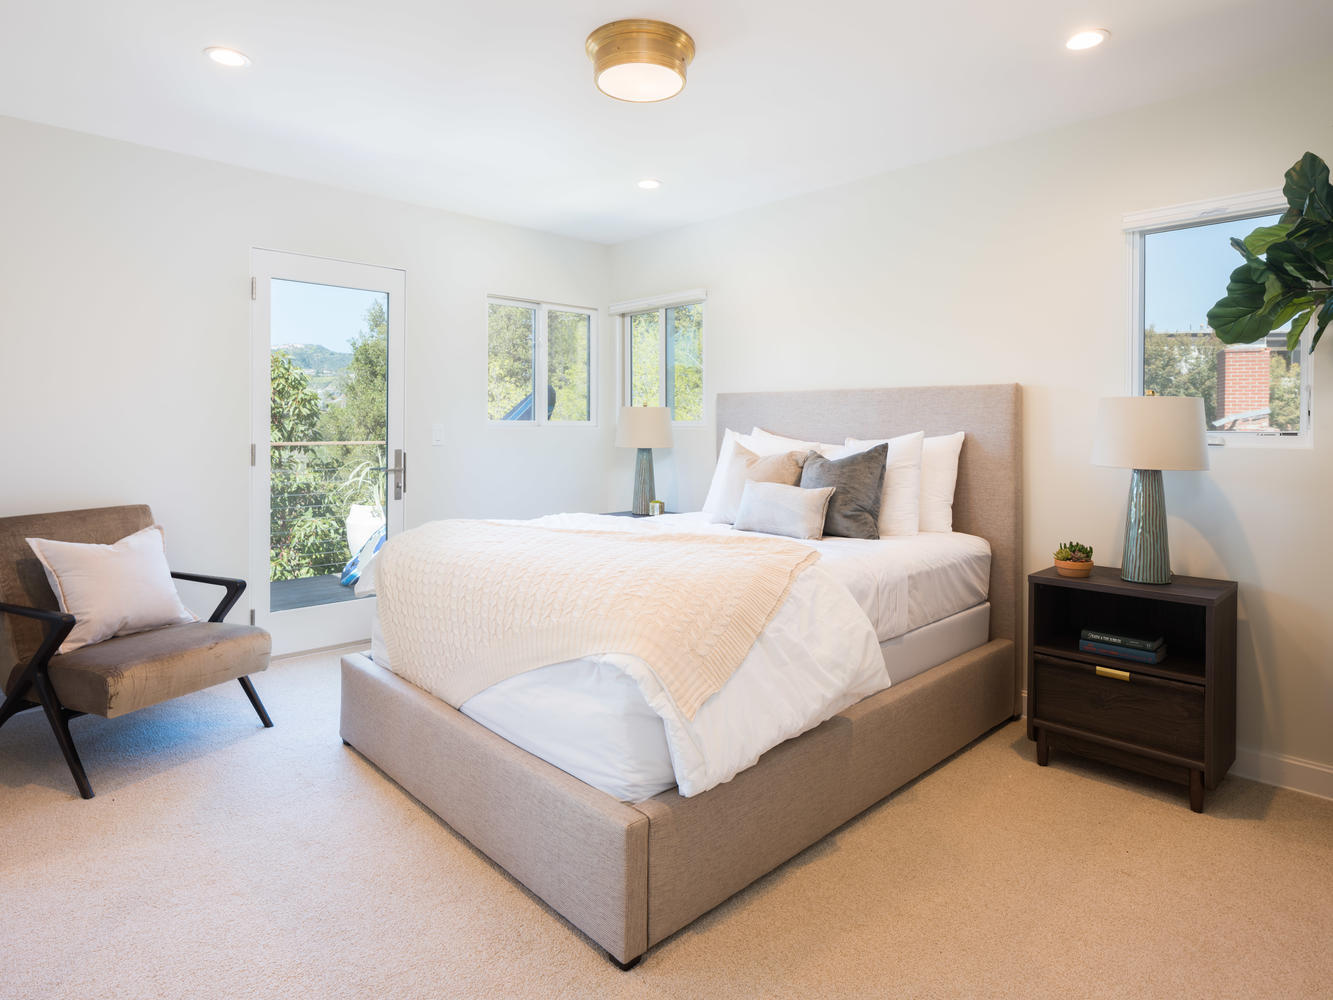 571 Radcliffe Ave Pacific-large-030-16-Bedroom-1334x1000-72dpi.jpg